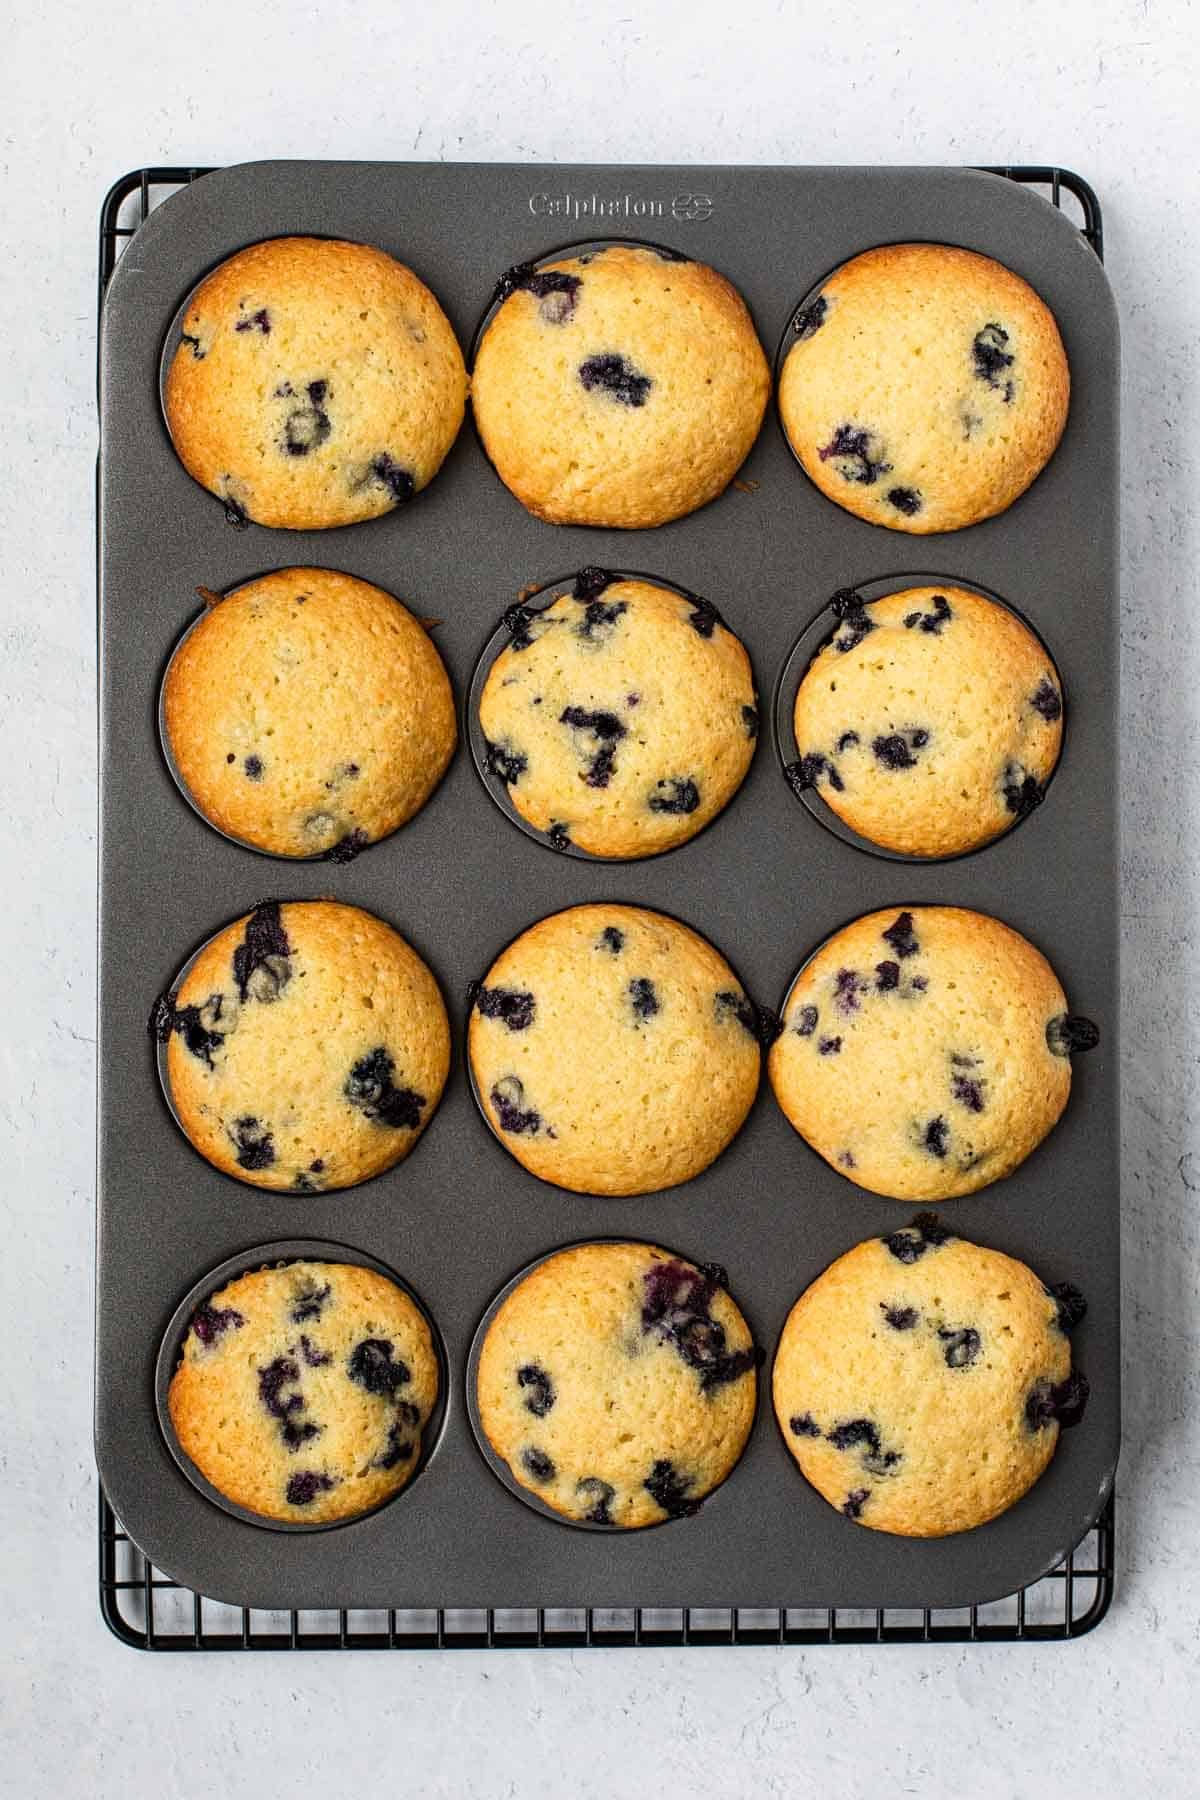 baked muffins in a pan